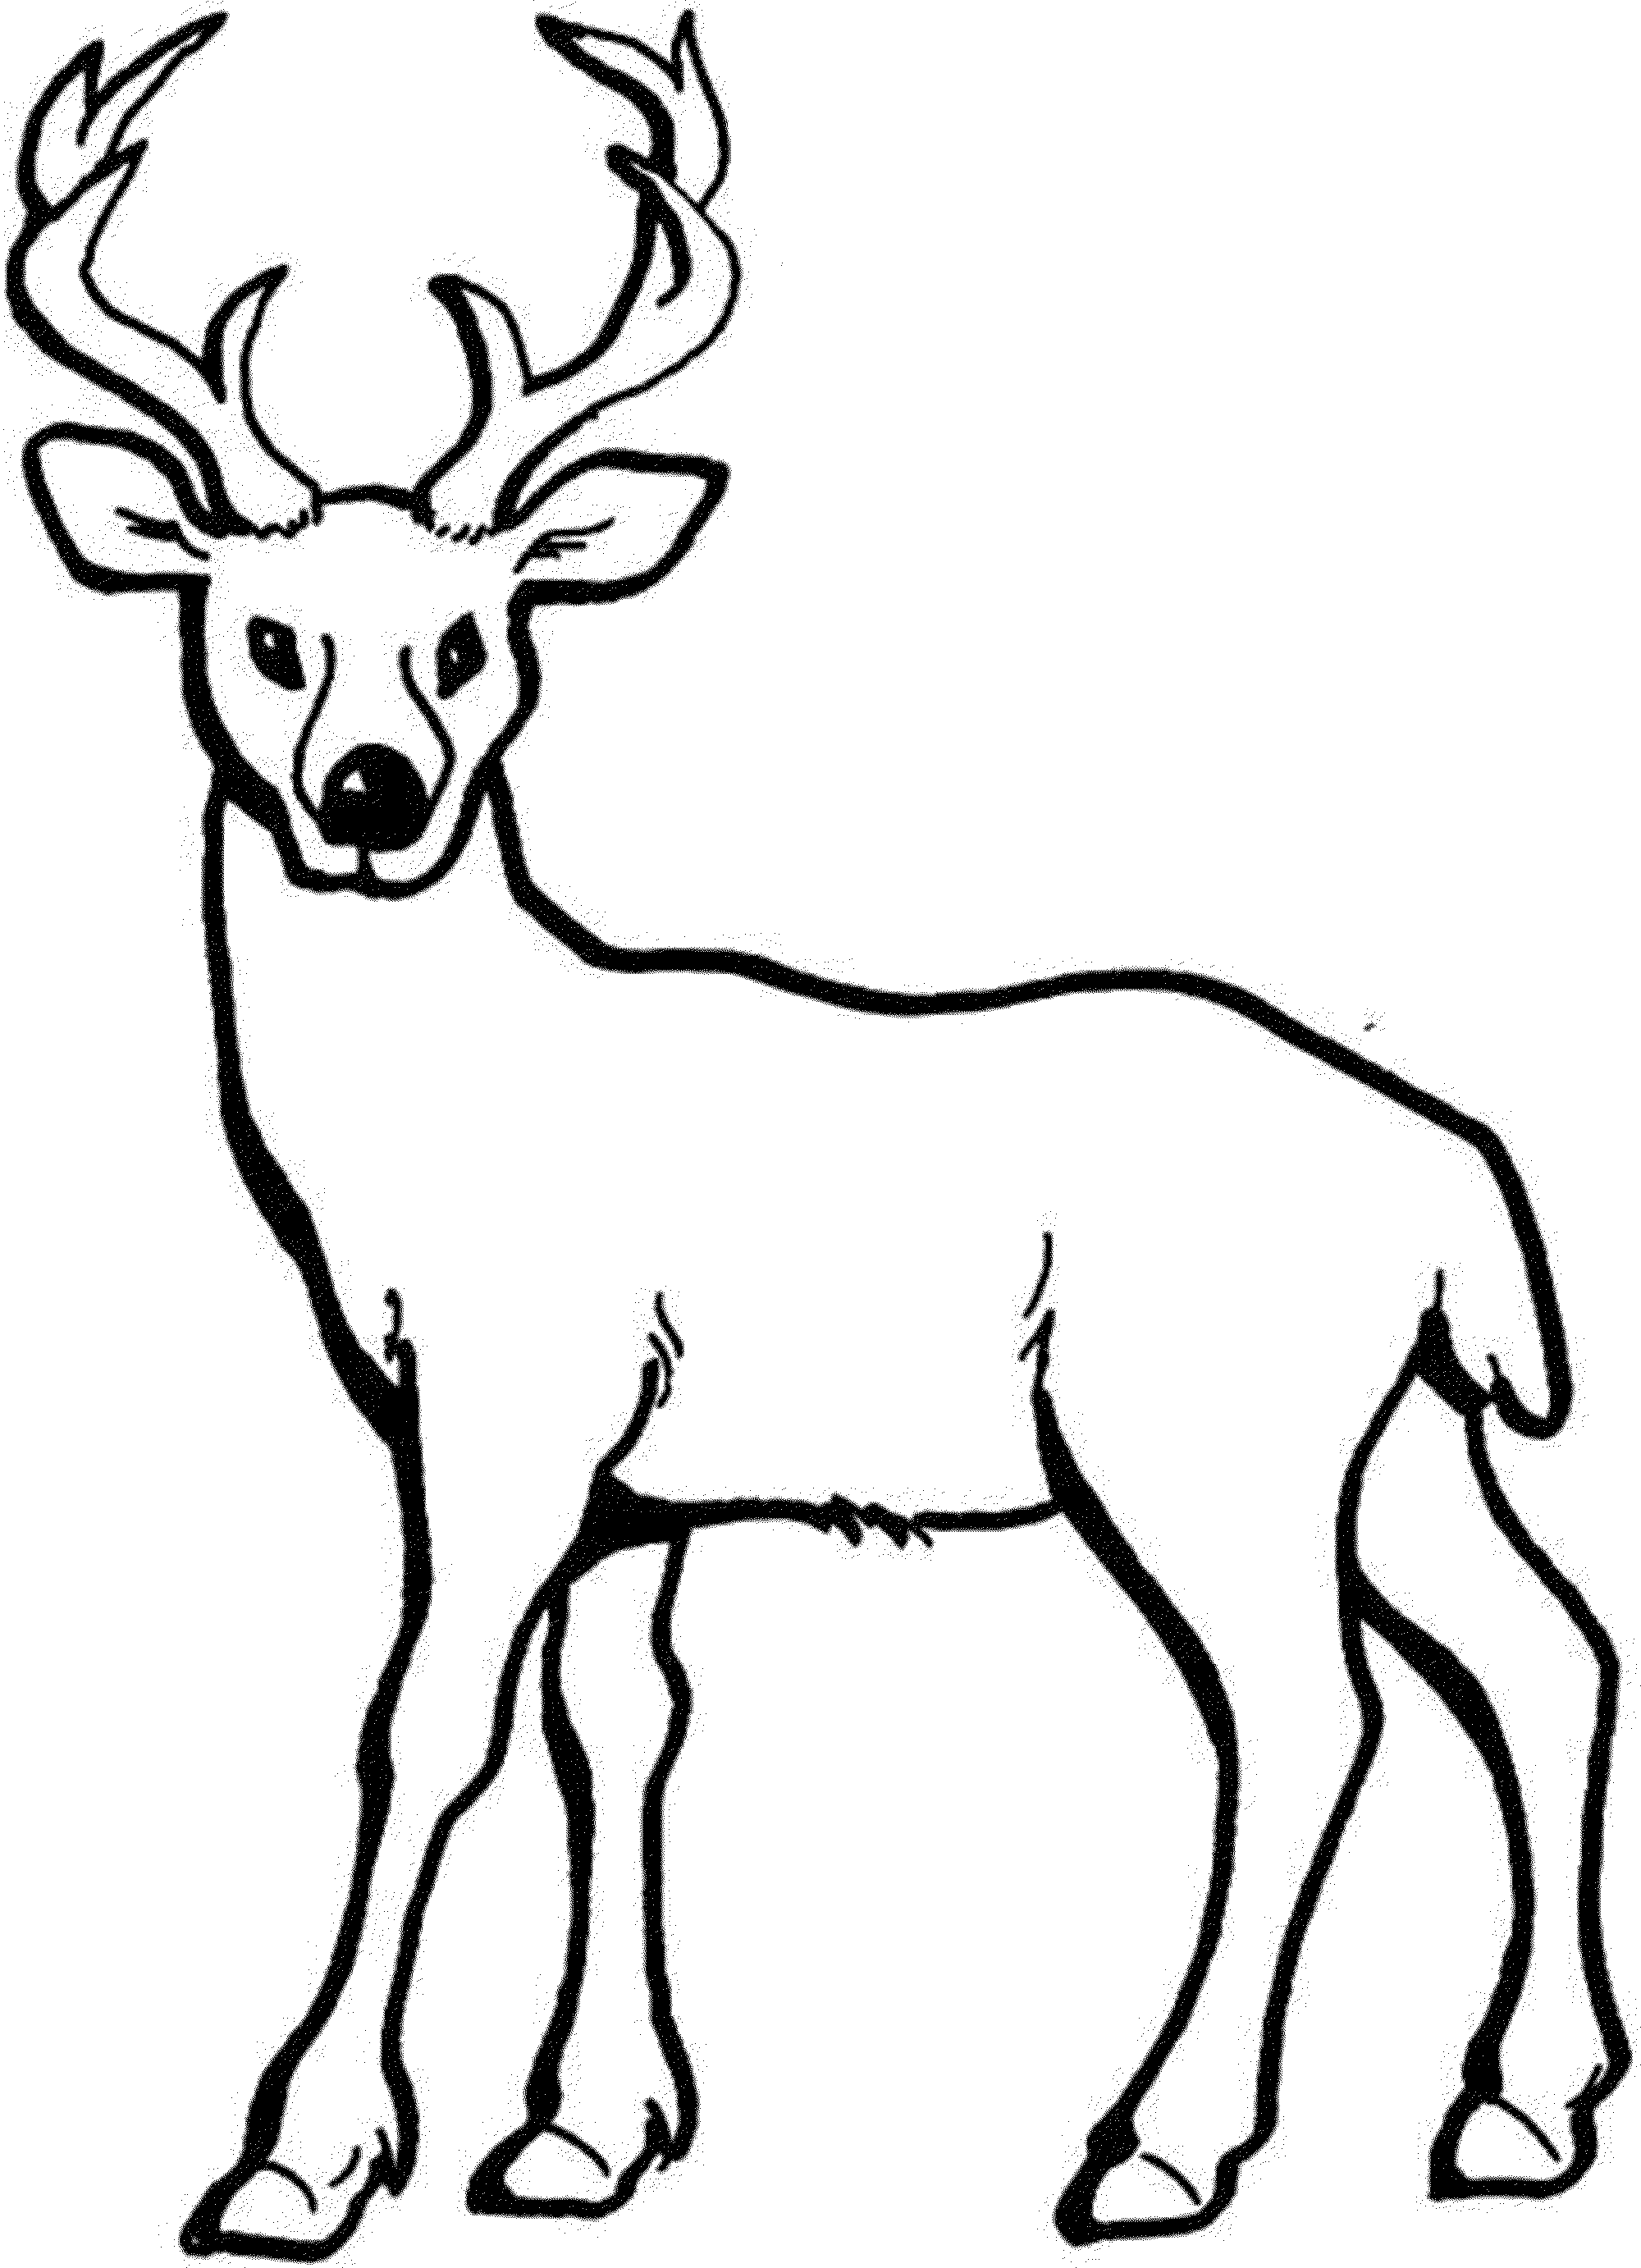 Preschool coloring games online free - Young Saw A Deer Danger Coloring Pages Animal Coloring Pages Kidsdrawing Free Coloring Pages Online